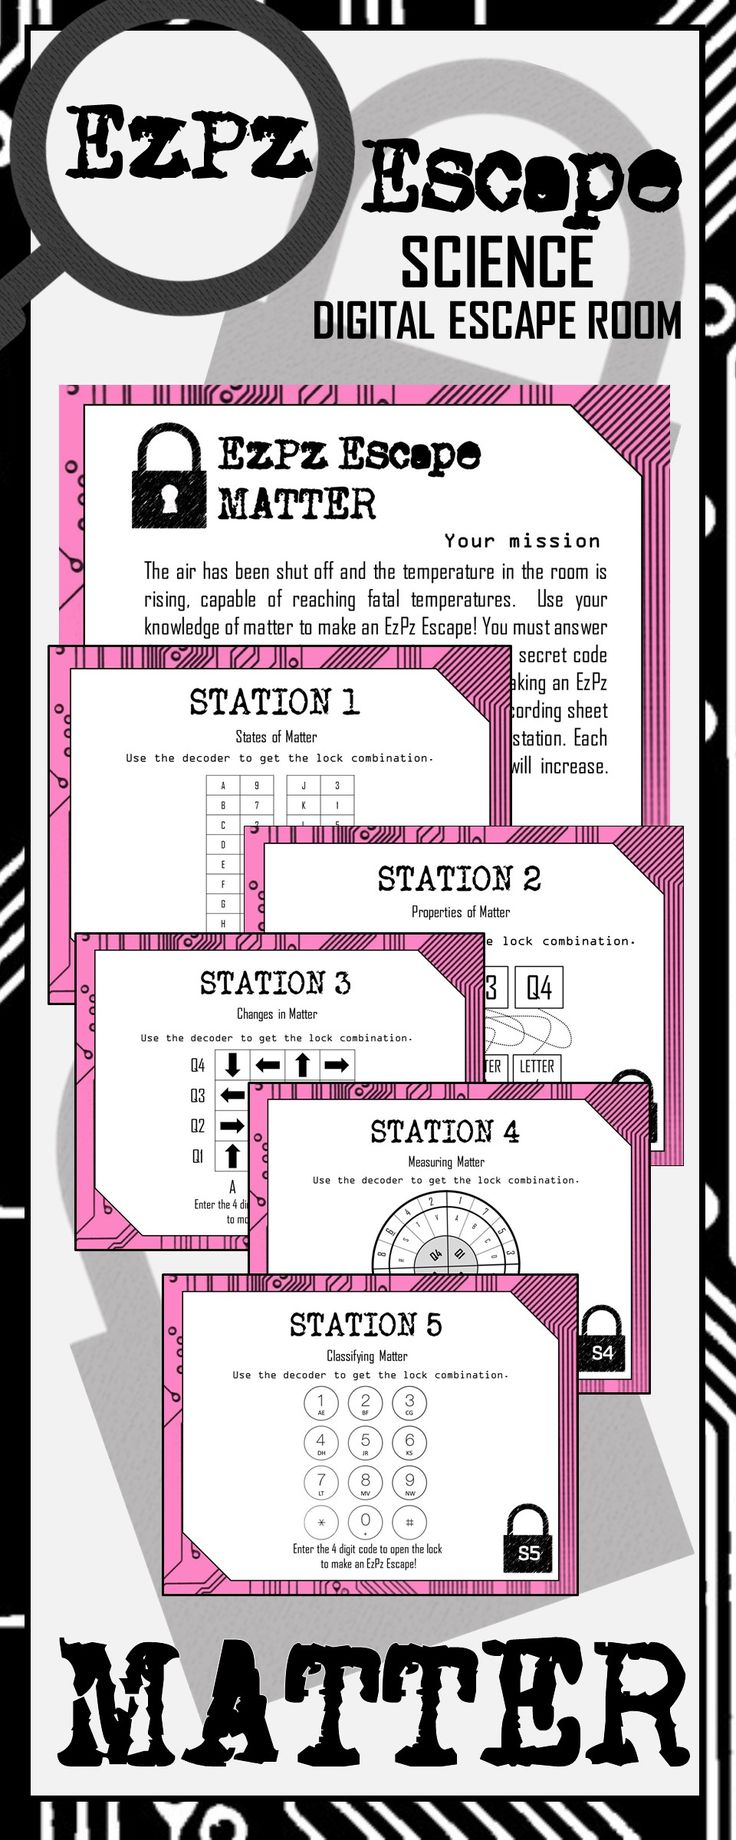 Students will have a blast with this Matter Escape Room! Students will use their knowledge of the matter to make an EzPz Escape! Students are required to answer station cards and use a decoder to get the code that will break them out of the digital room. There are 5 stations with 4 questions per station. Stations include: 1. States of Matter 2. Properties of Matter 3. Changes in Matter 4. Measuring Matter (density, matter and volume) 5. Classifying Matter (element, mixture, compound)